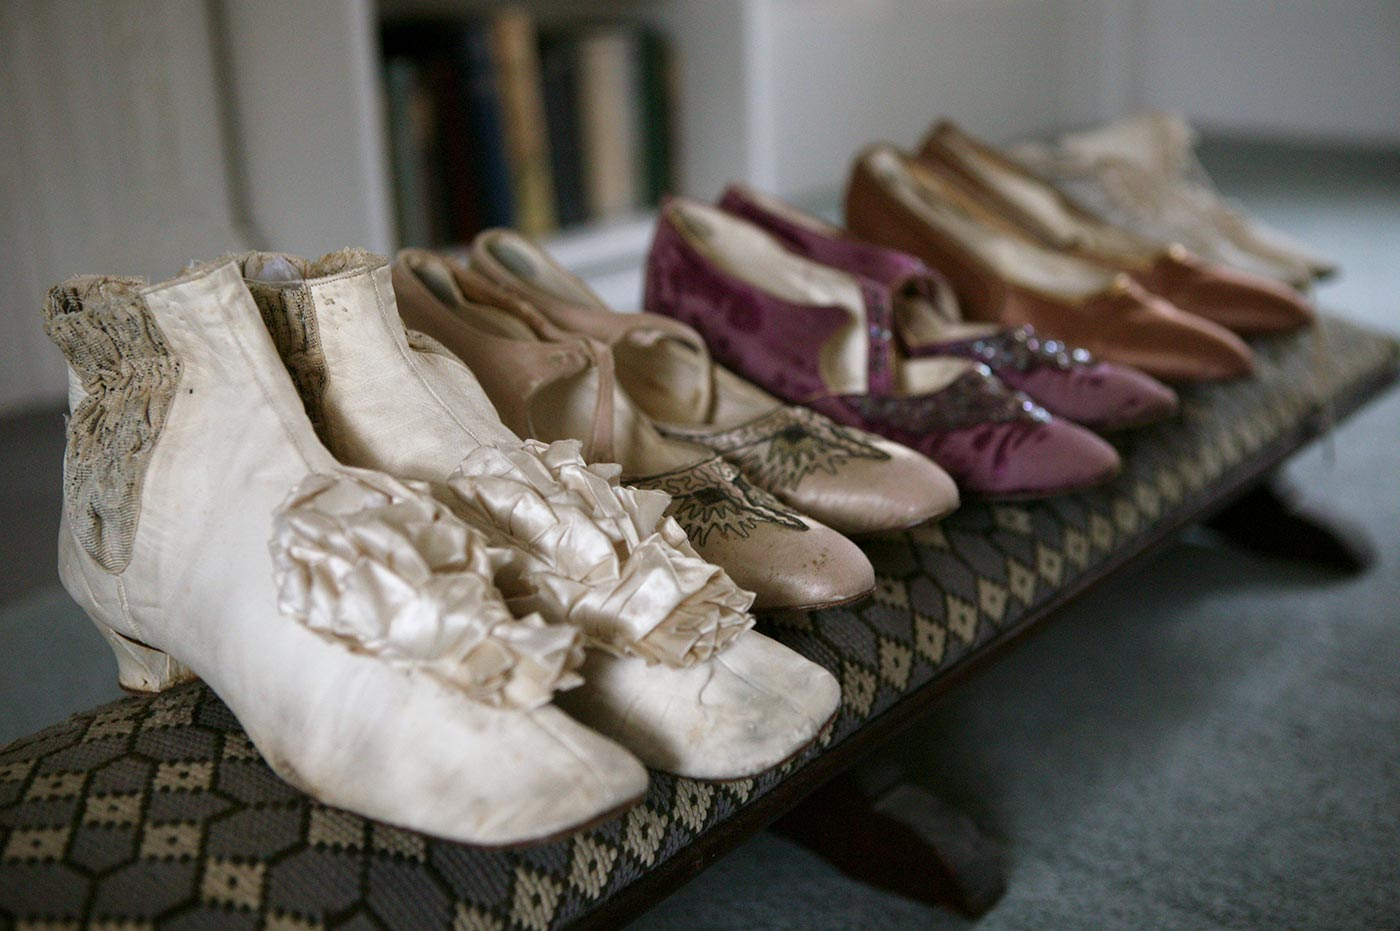 Colour photograph of five pairs of ladies shoes lined up on a low stool.